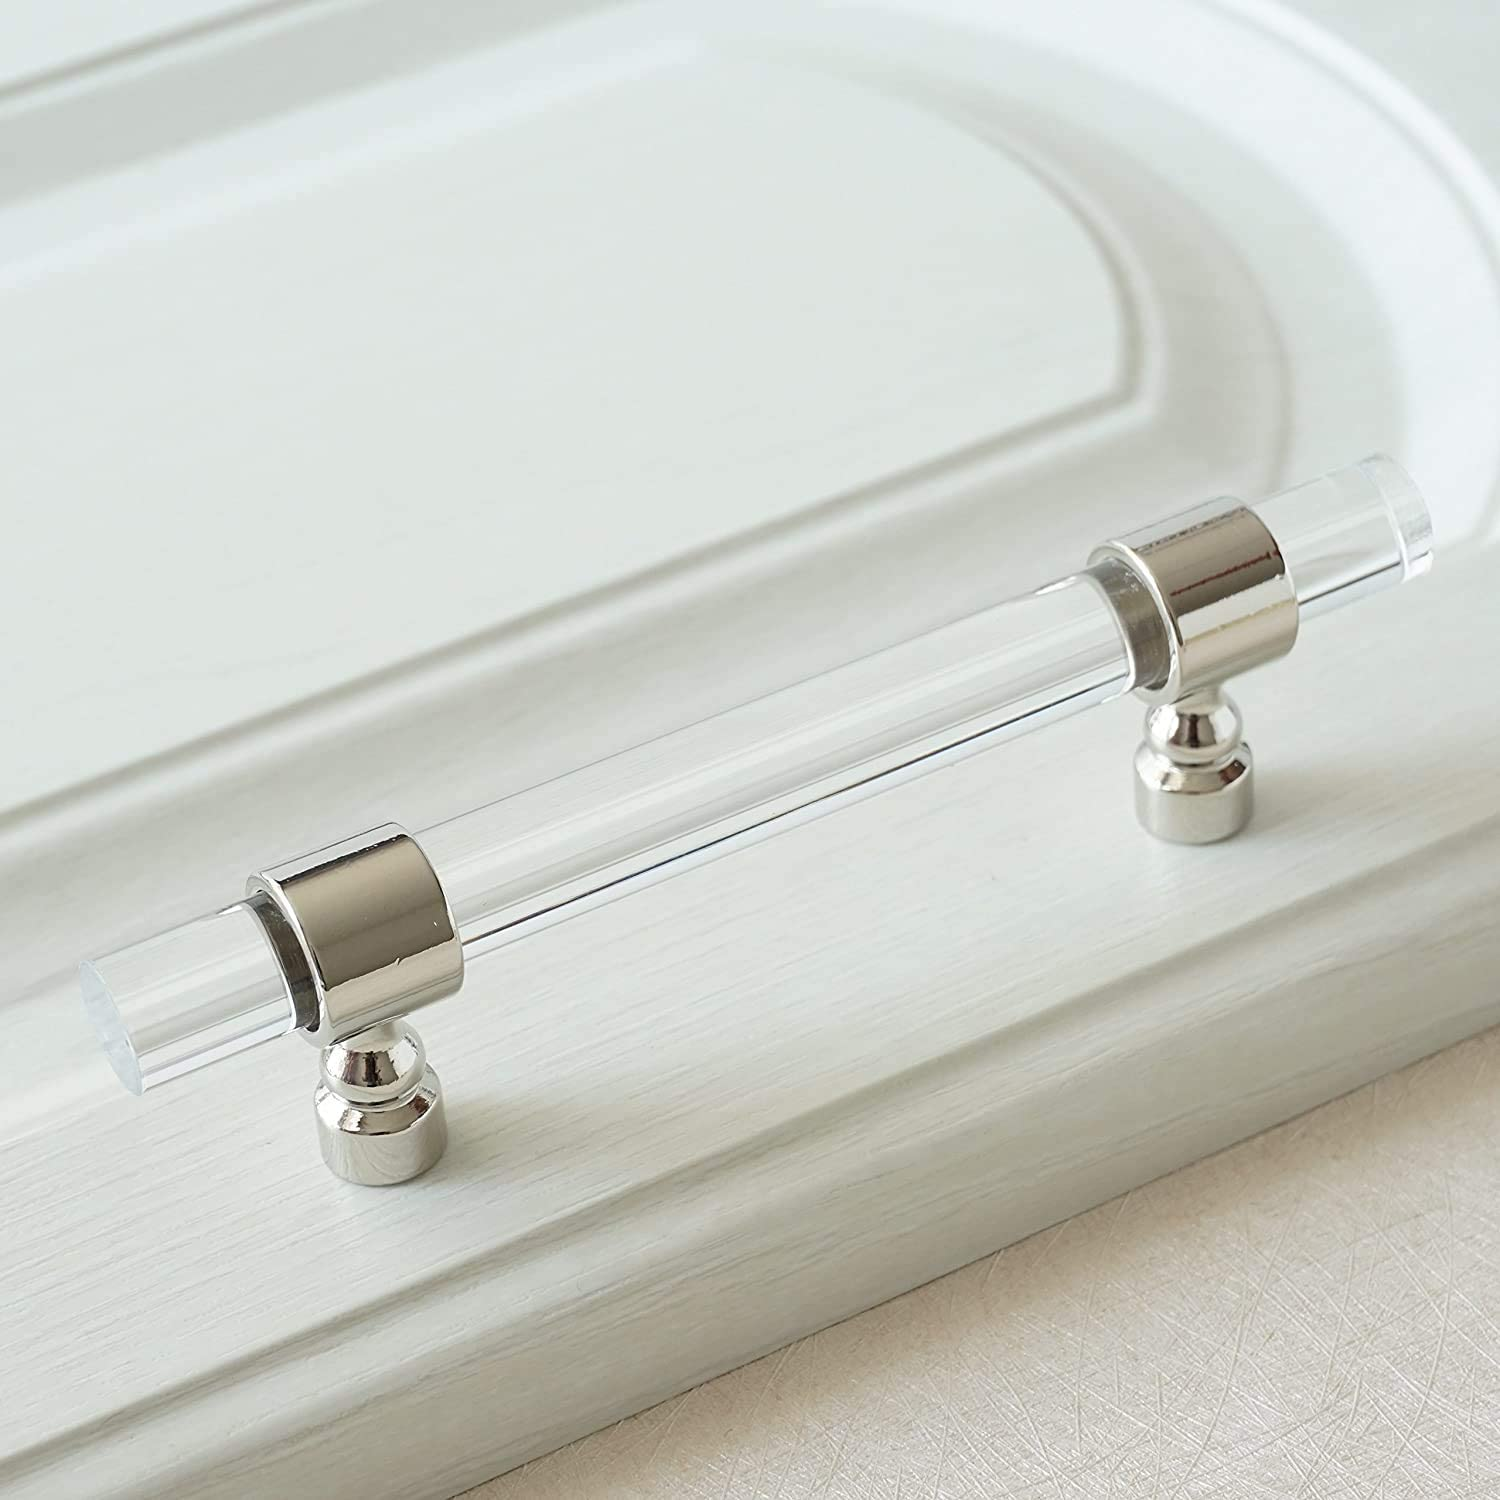 "LBFEEL 4 Pack 3 1/2"" Hole Centers Acrylic Drawer Pulls Clear Lucite Dresser Handle Crystal Kitchen Cabinet Knob Bathroom Hardware 89mm (3 1/2"" Hole Centers, 4 Pack)"